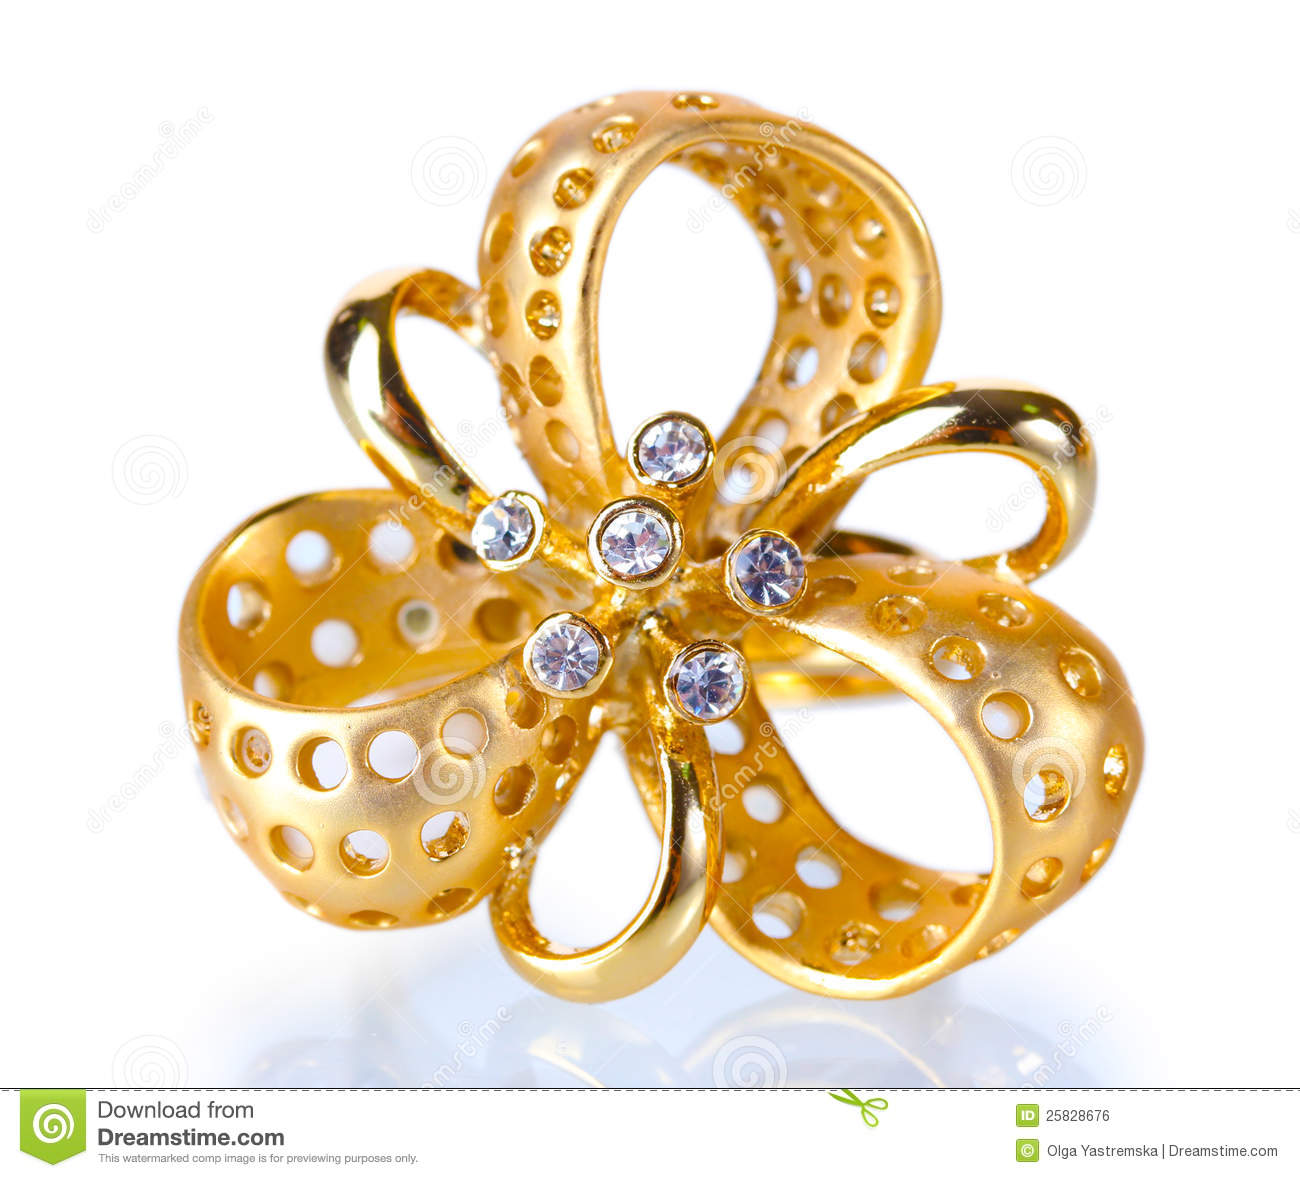 Beautiful Gold Ring With Precious Stones Stock Photo - Image: 25828676